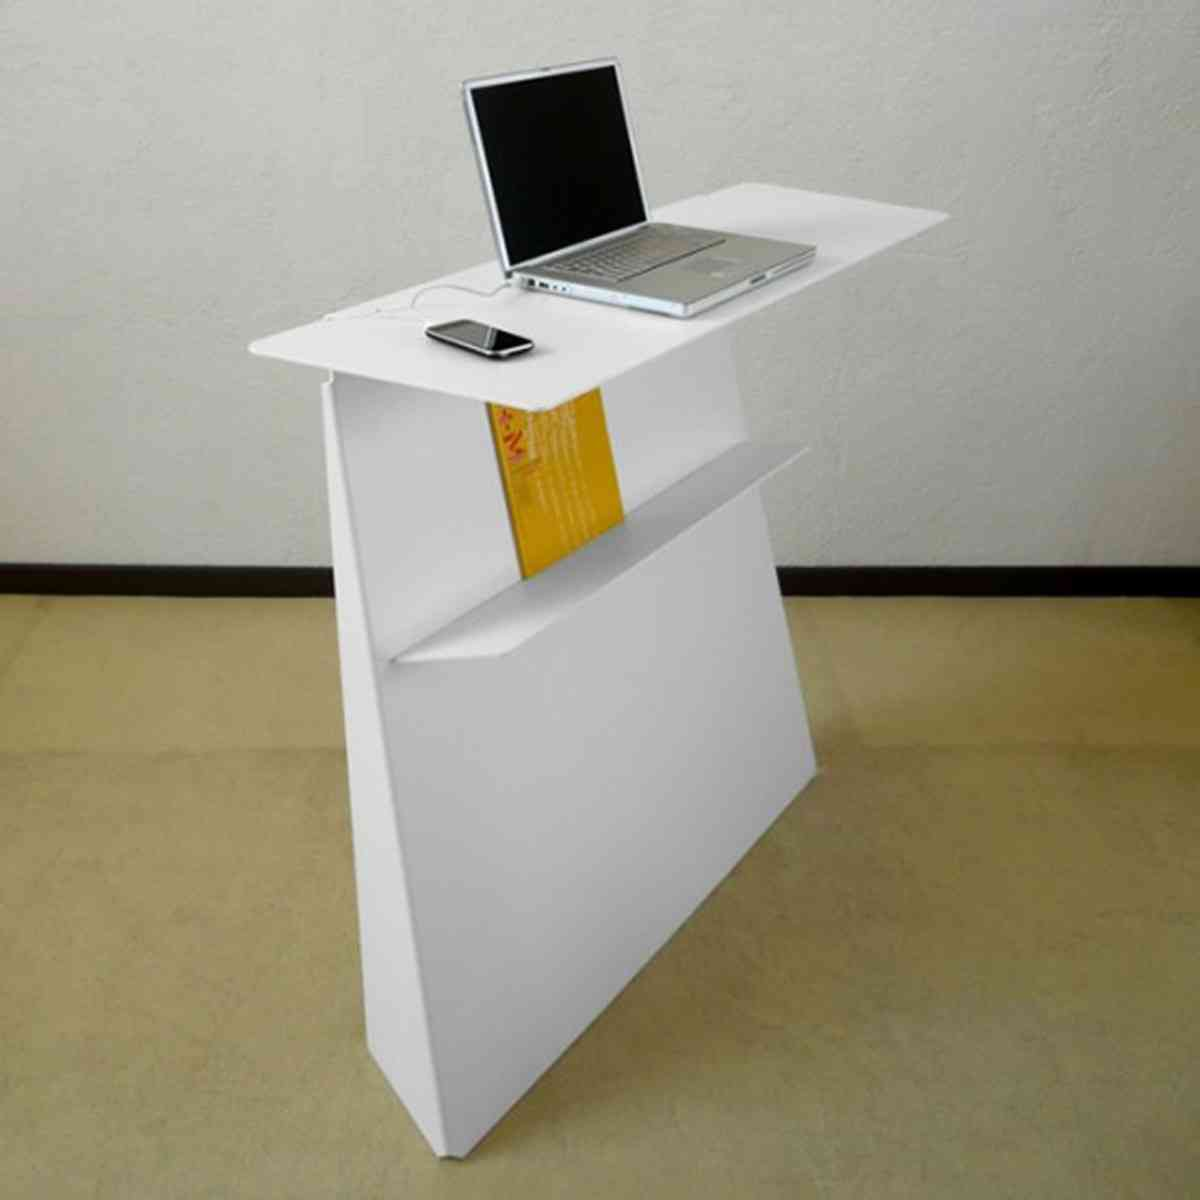 Stand Up Desk Designs : Small standing desk design decor ideasdecor ideas